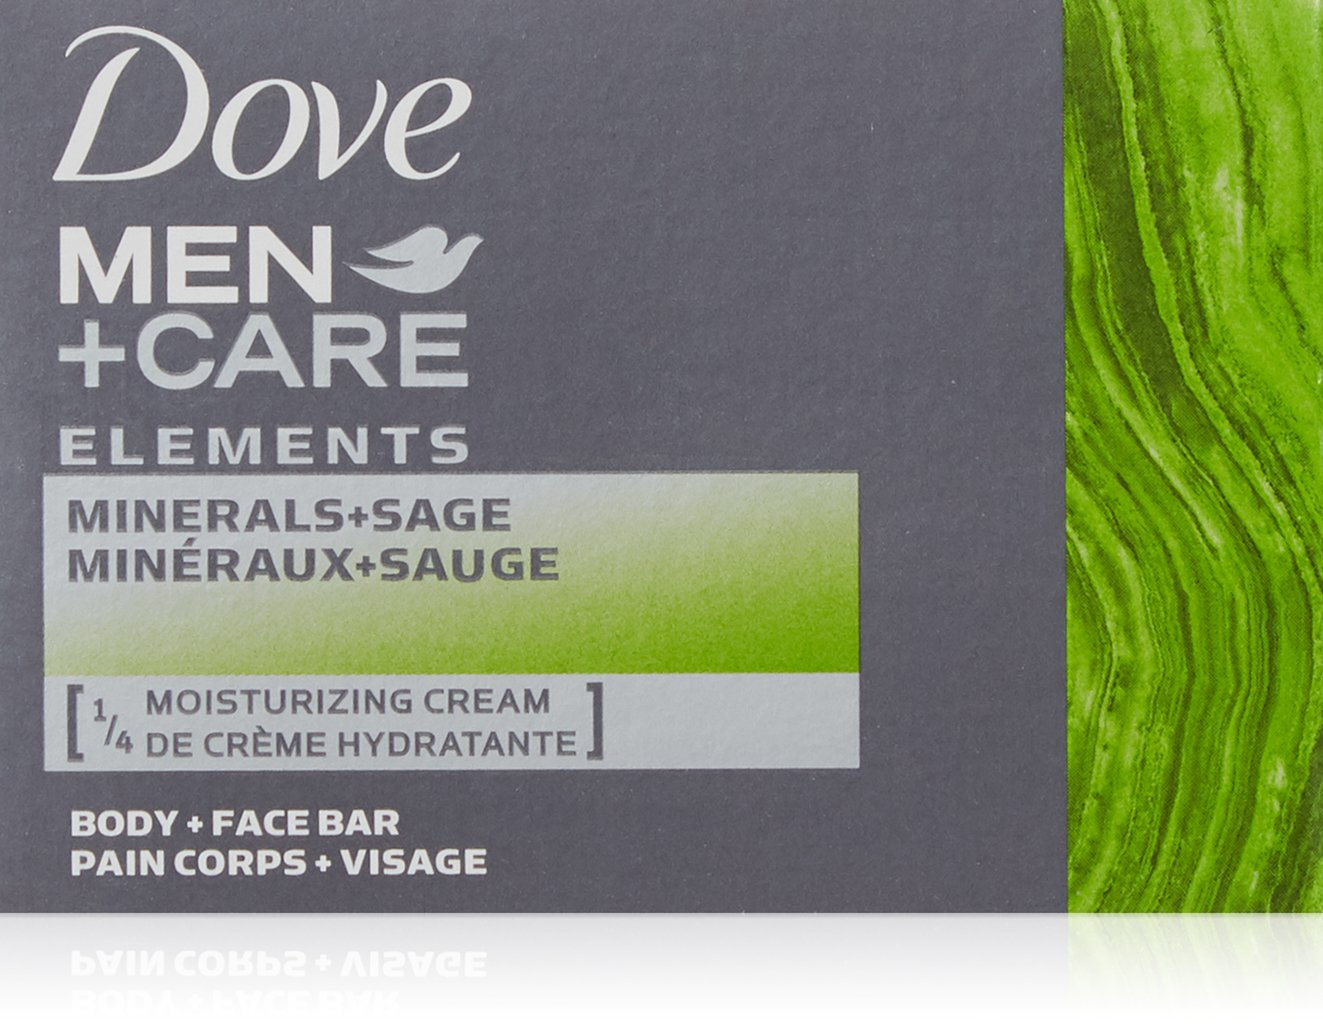 Dove Men+Care Elements Bar Minerals and Sage, 4 Ounce, 2 bars